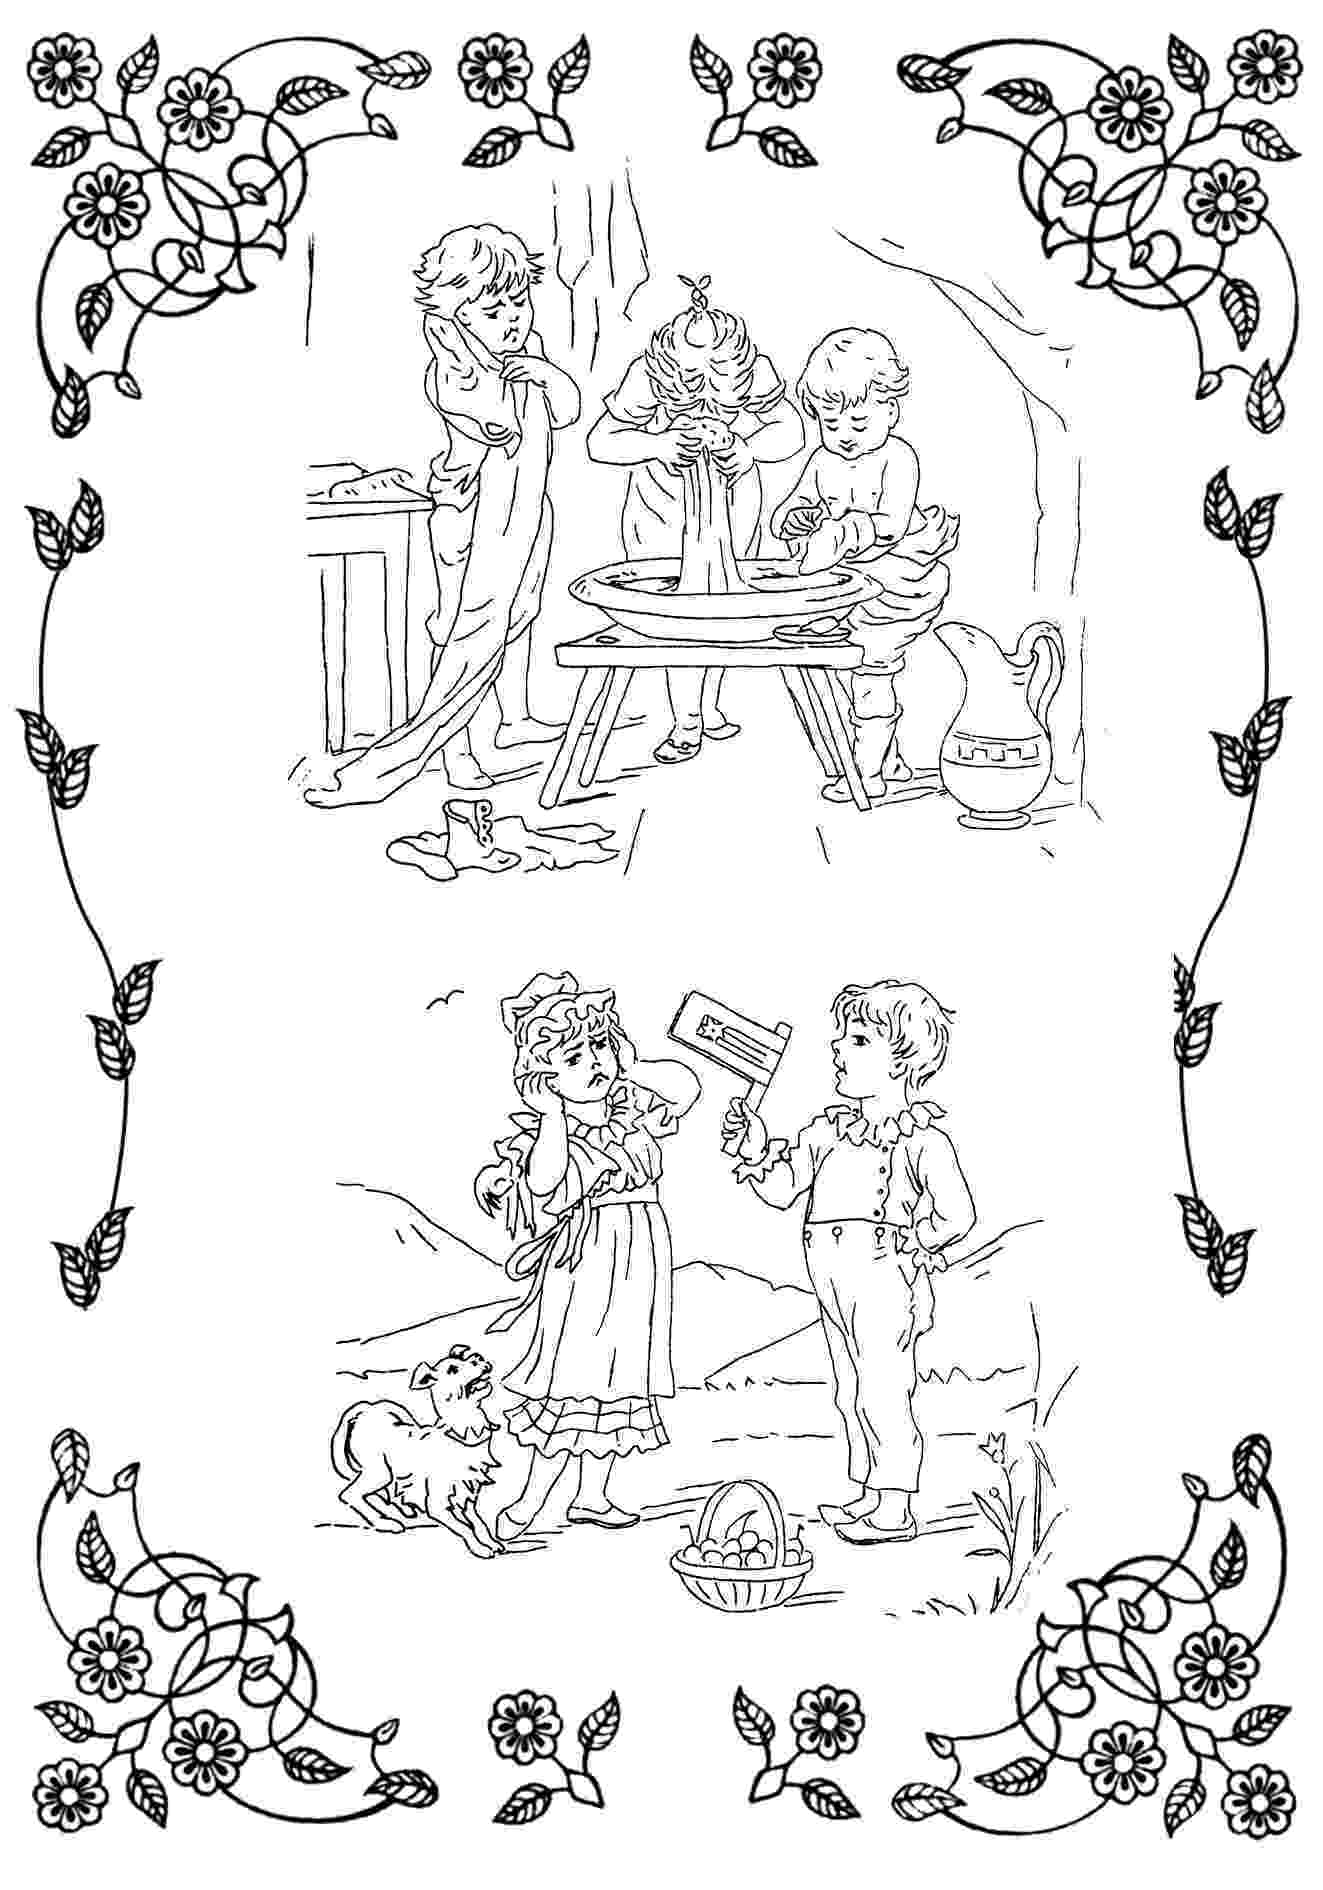 victorian coloring pages victorian printable coloring pictures pages victorian coloring 1 3